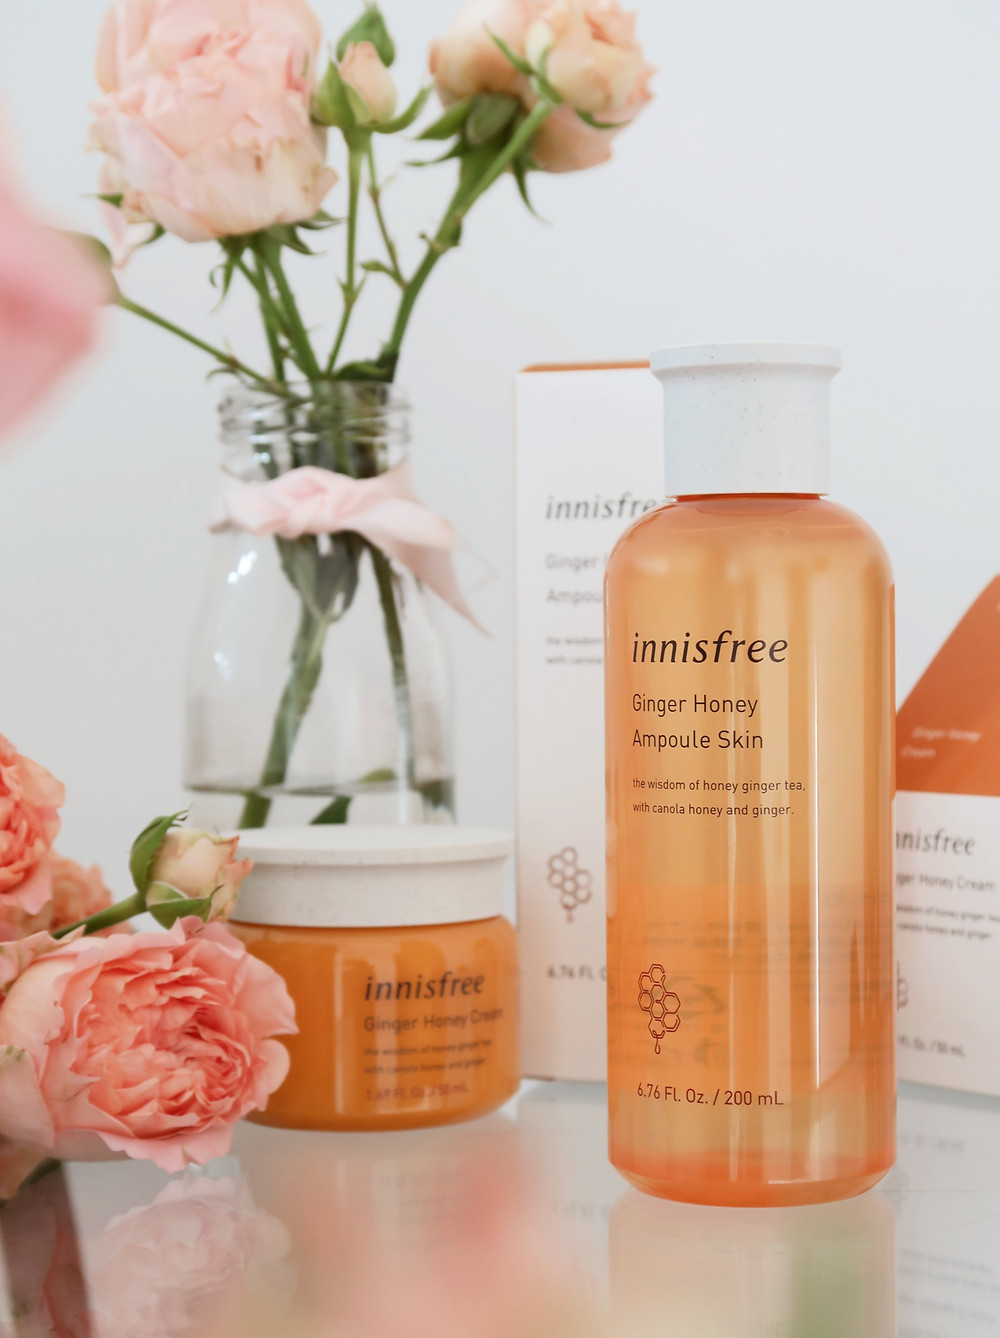 innisfree ginger honey ampoule skin toner review